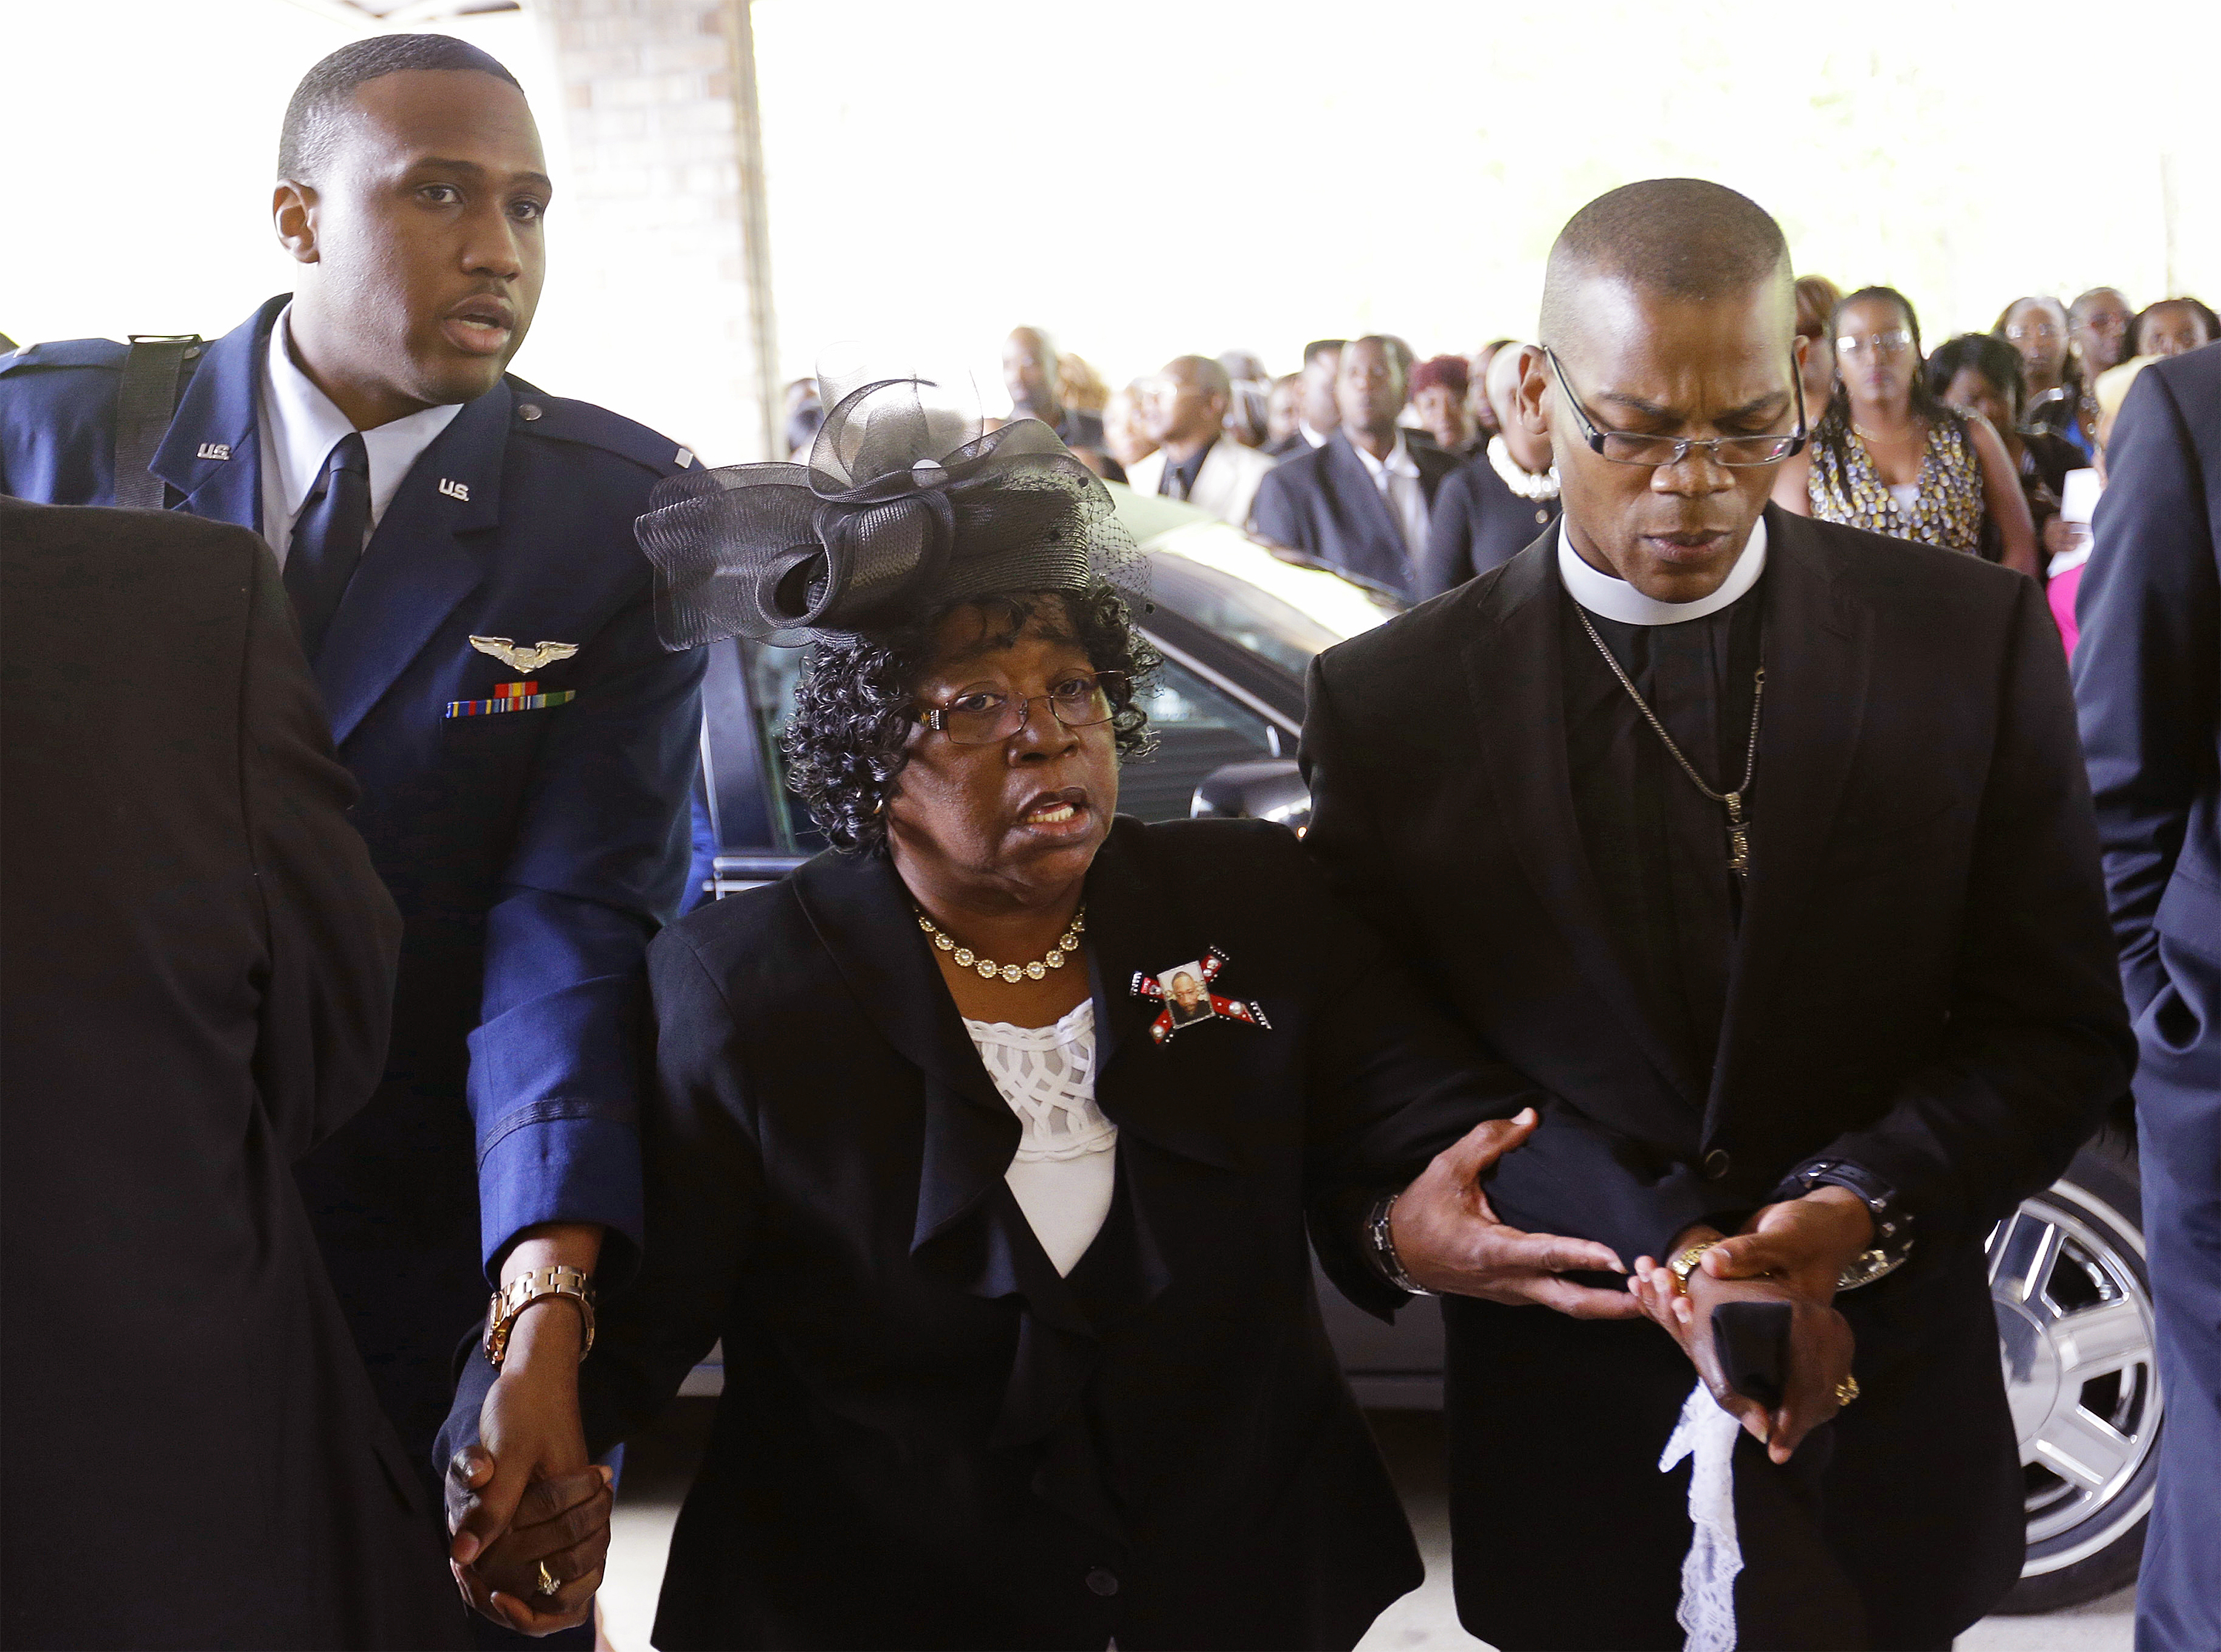 Judy Scott, center, is escorted in for the funeral of her son, Walter Scott, at W.O.R.D. Ministries Christian Center, April 11, 2015 in Summerville, South Carolina. (David Goldman/Getty Images)